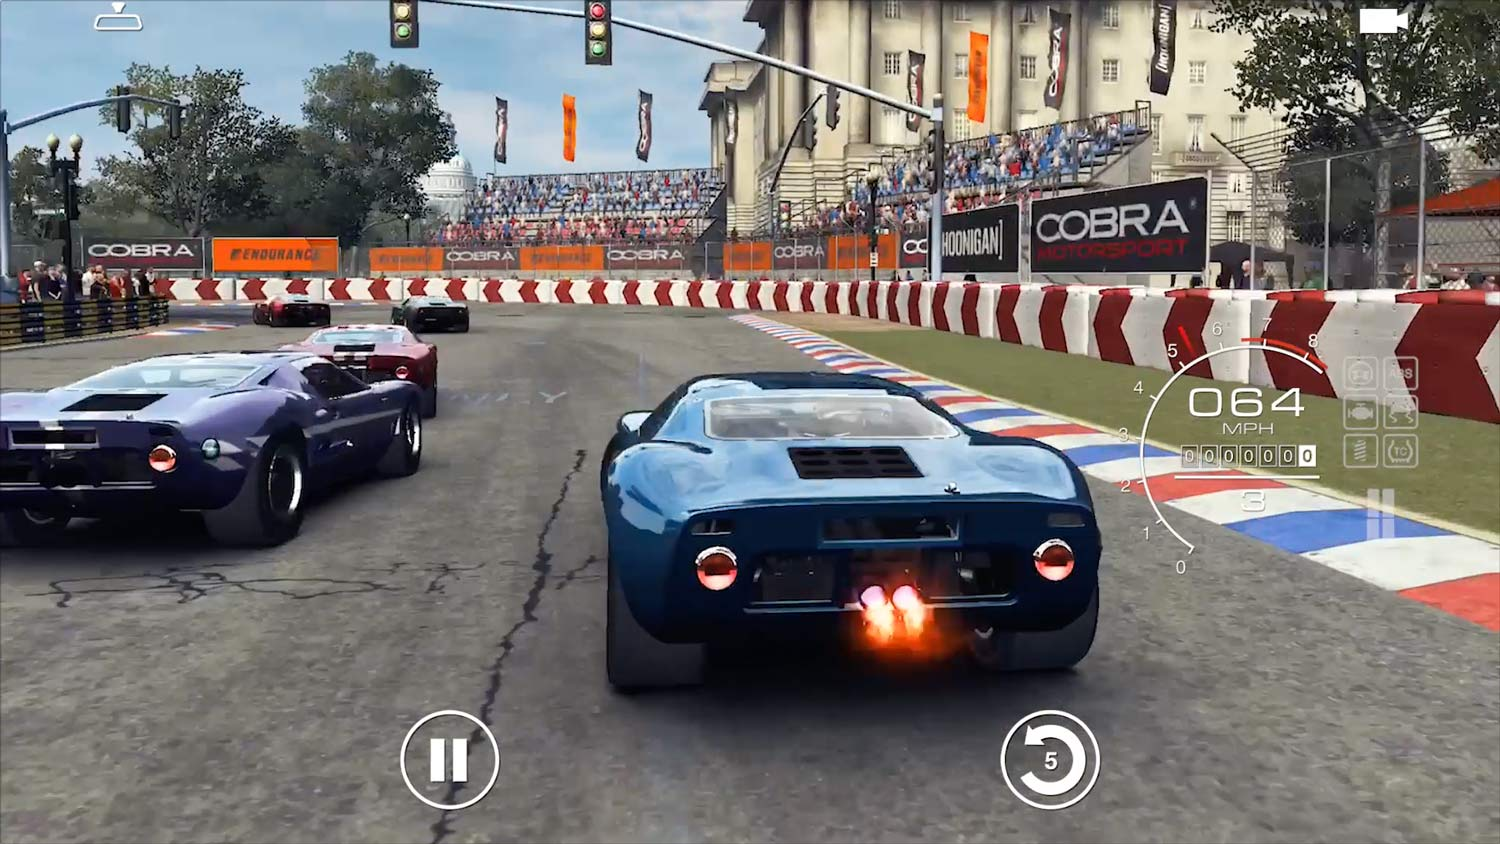 Grid Autosport For Ios Feral Interactive Street Circuit City Speed Race Android Apps On Google Play